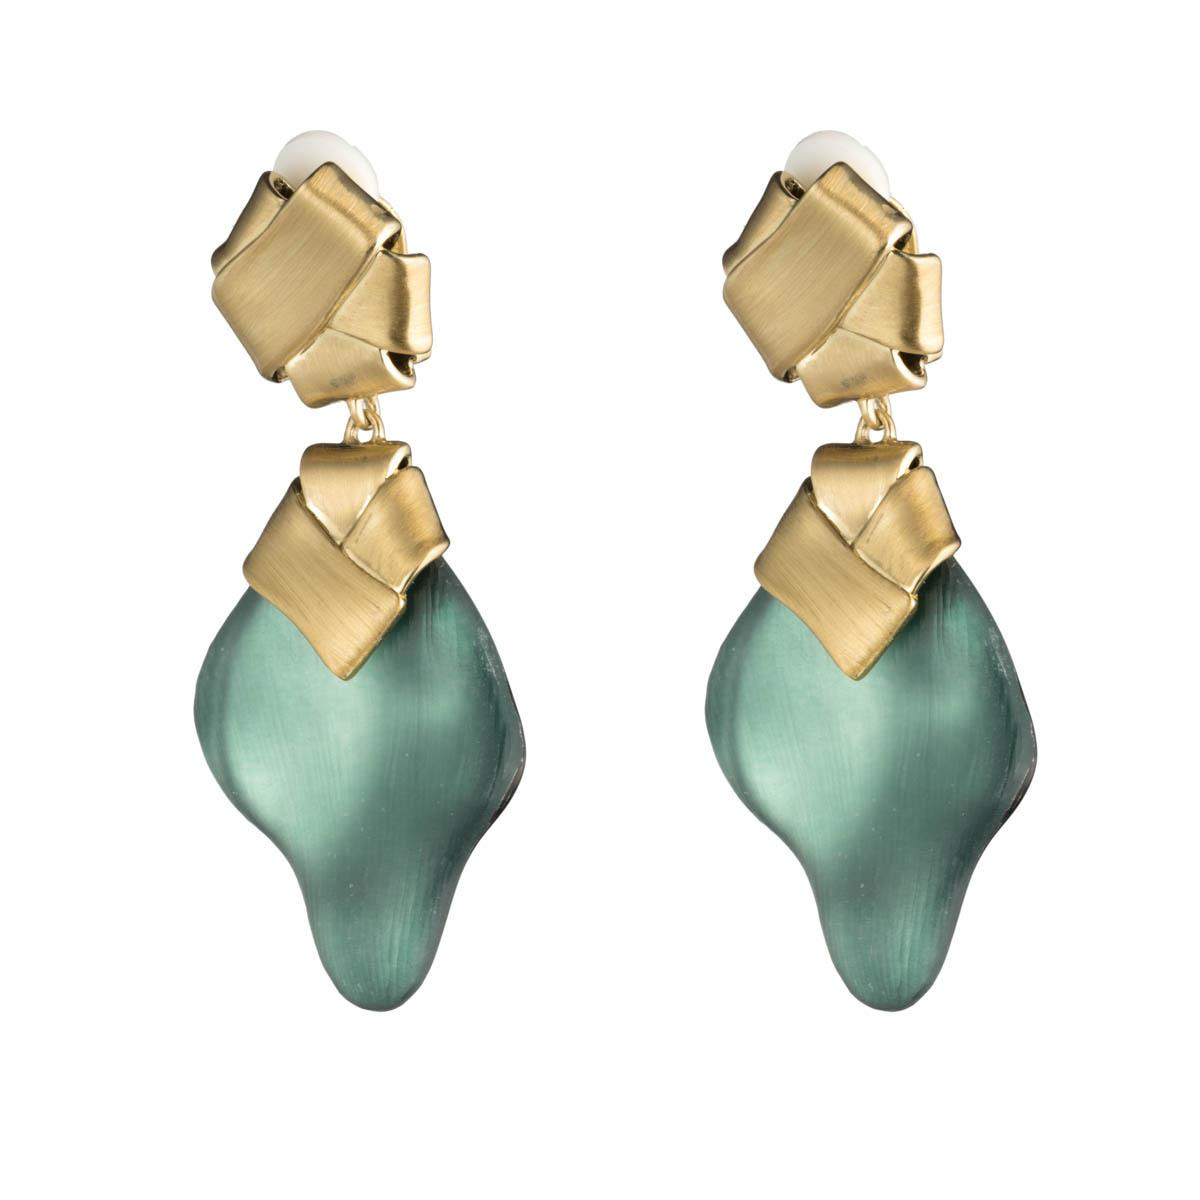 Alexis Bittar Folded Knot Dangling Clip Earring Teal blue Gy7uN